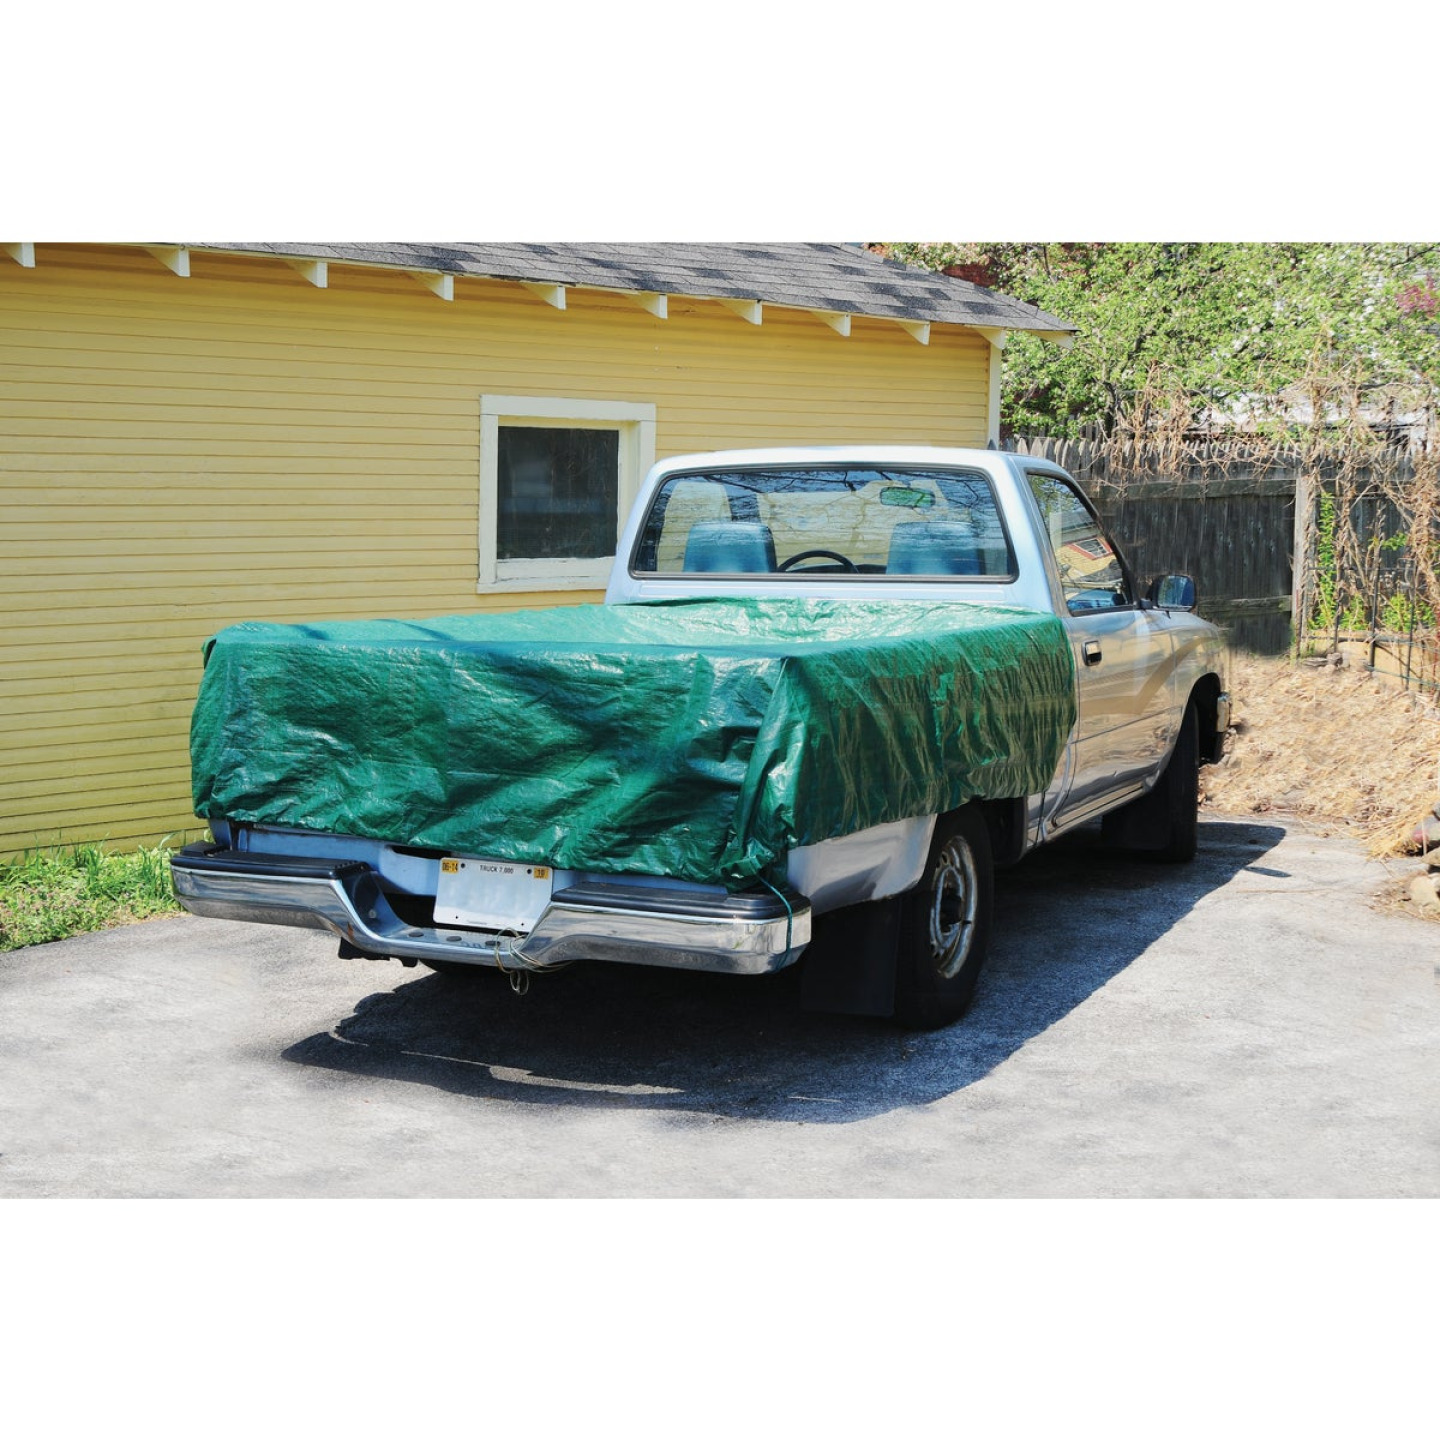 Do it Best 9 Ft. x 9 Ft. Poly Fabric Green Lawn Cleanup Tarp Image 4